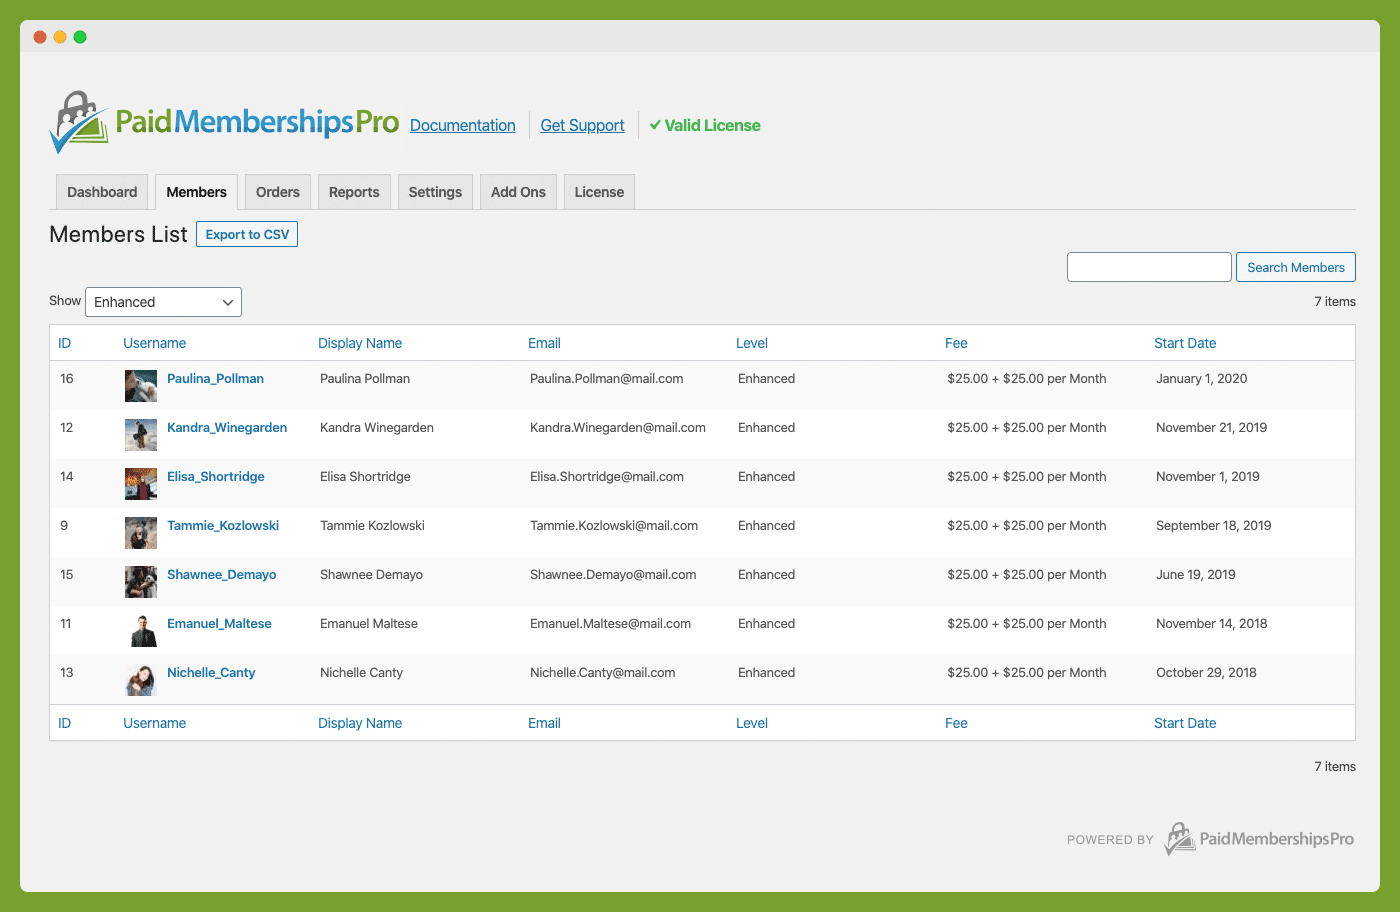 Members are WordPress Users. PMPro provides a unique interface to view, filter and search Members or export your Members List.